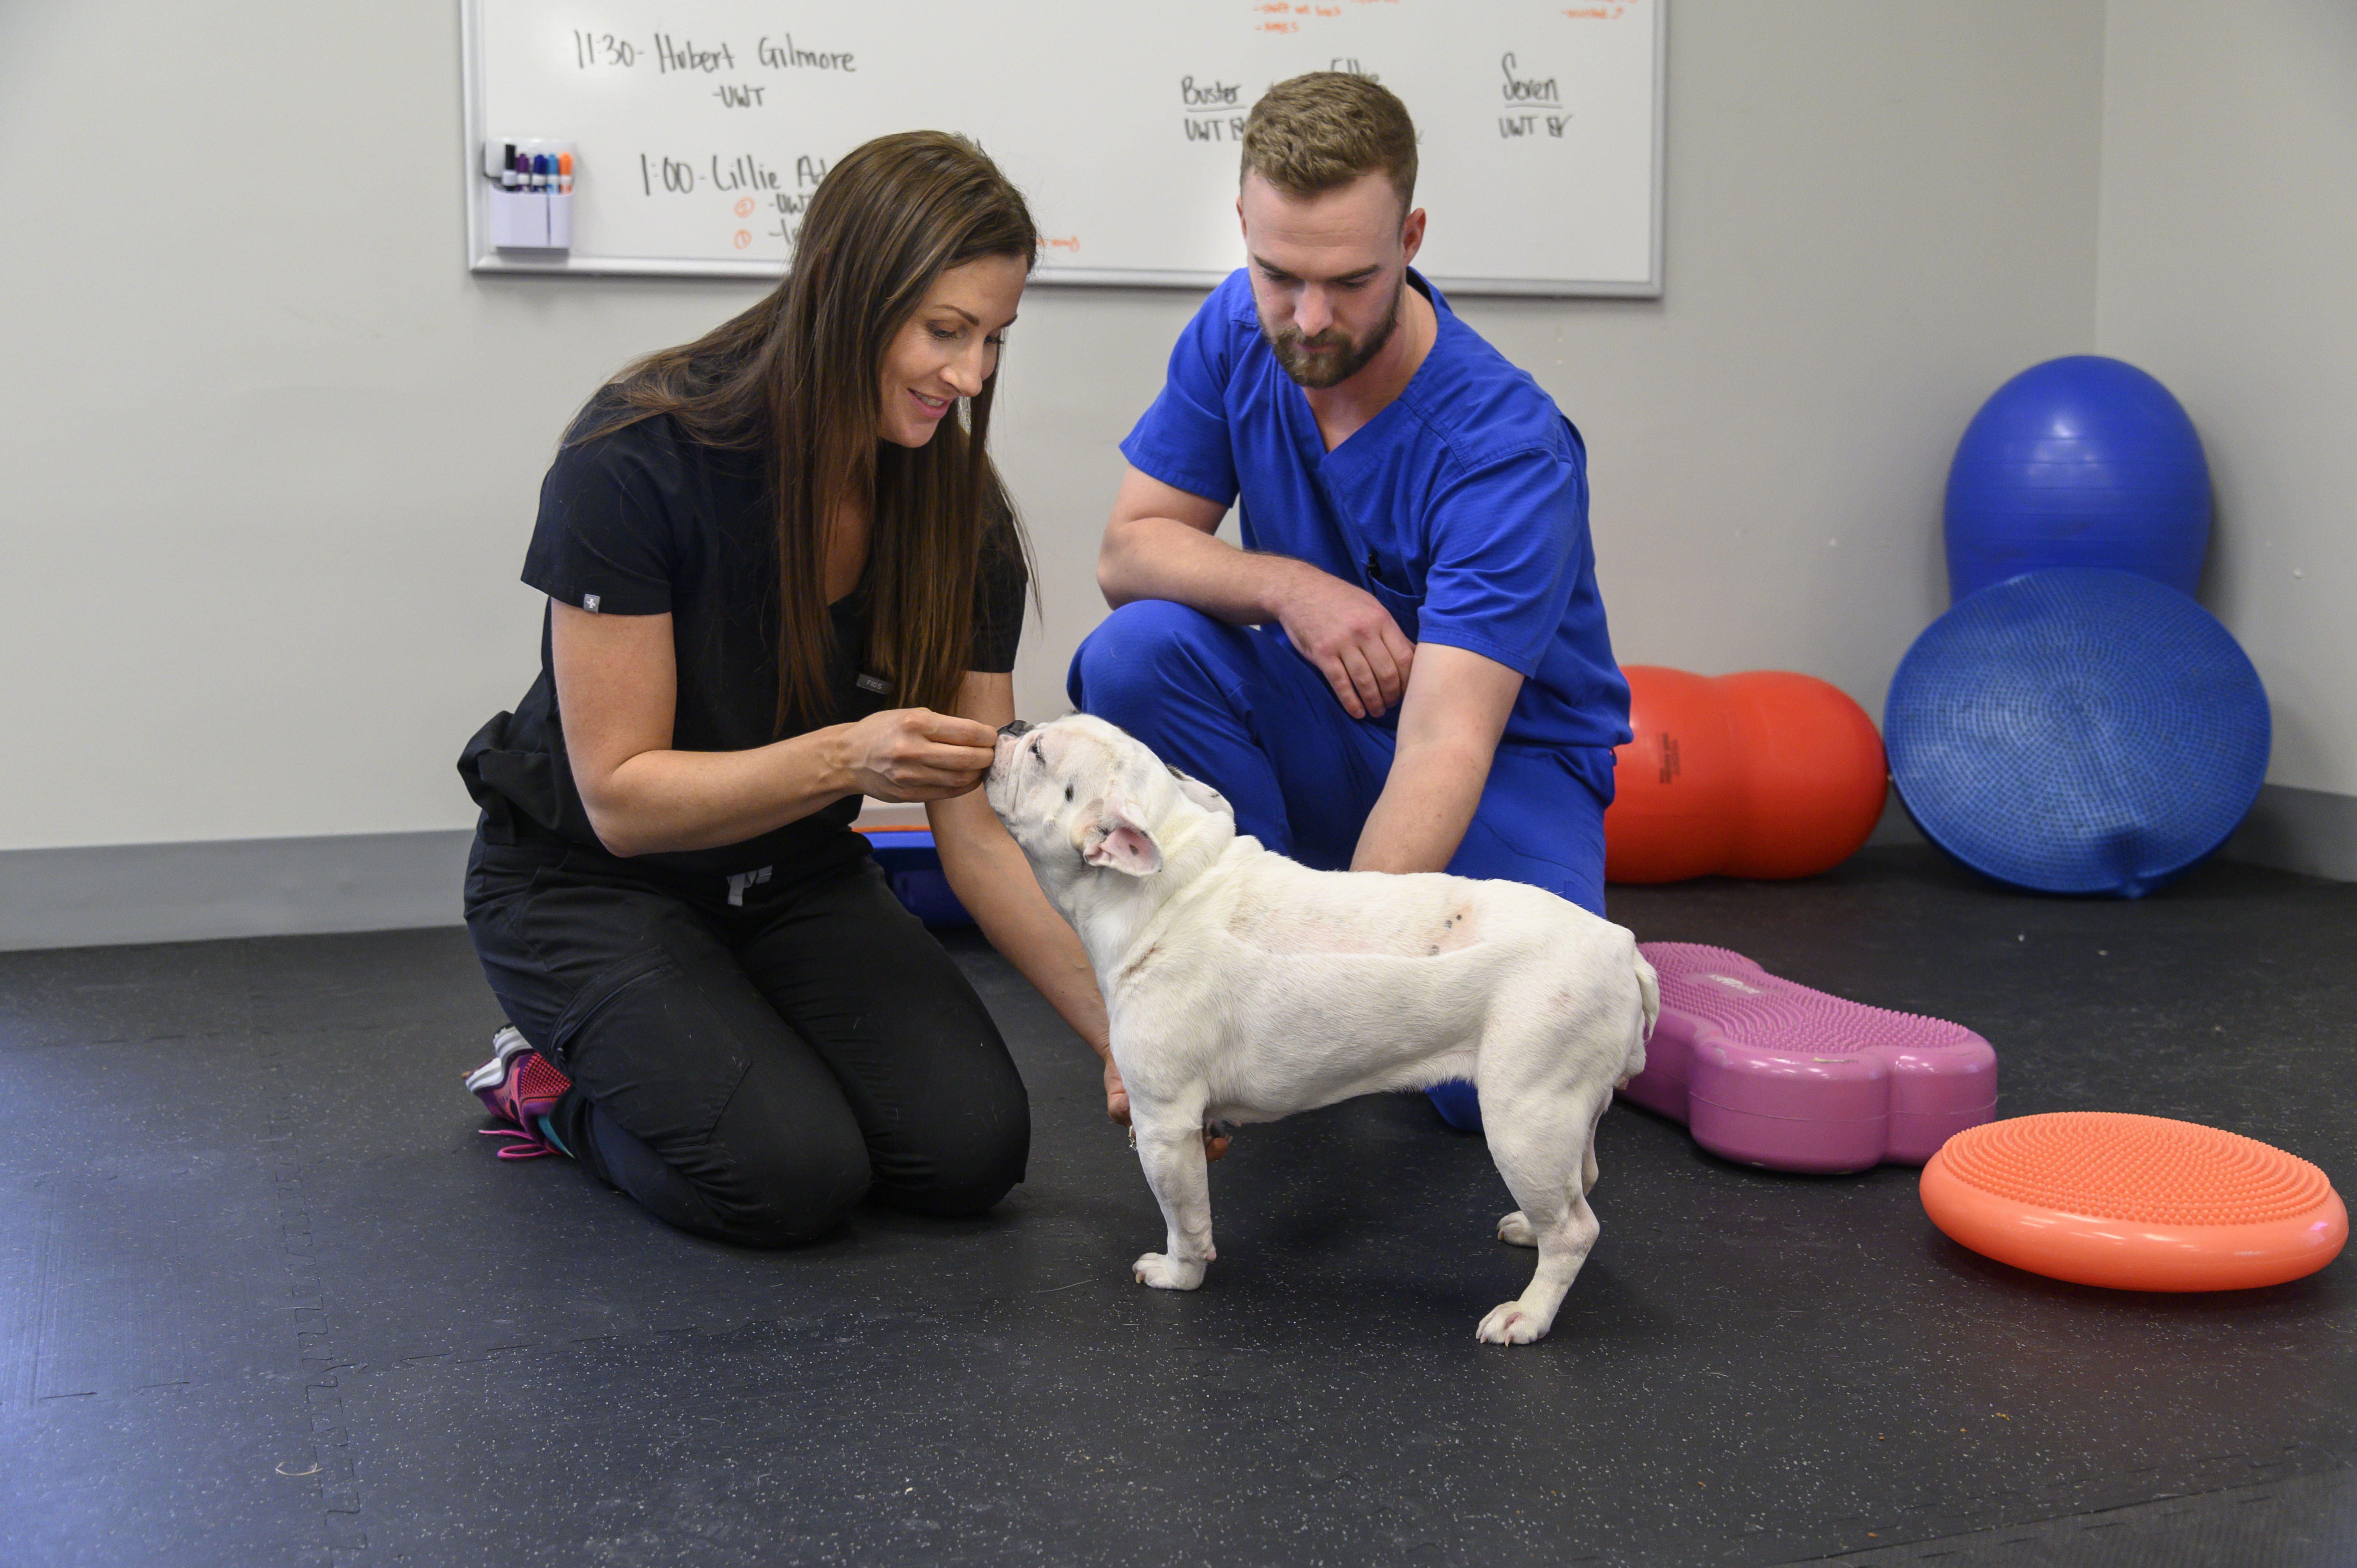 A veterinarian and student perform rehab exercises on a dog